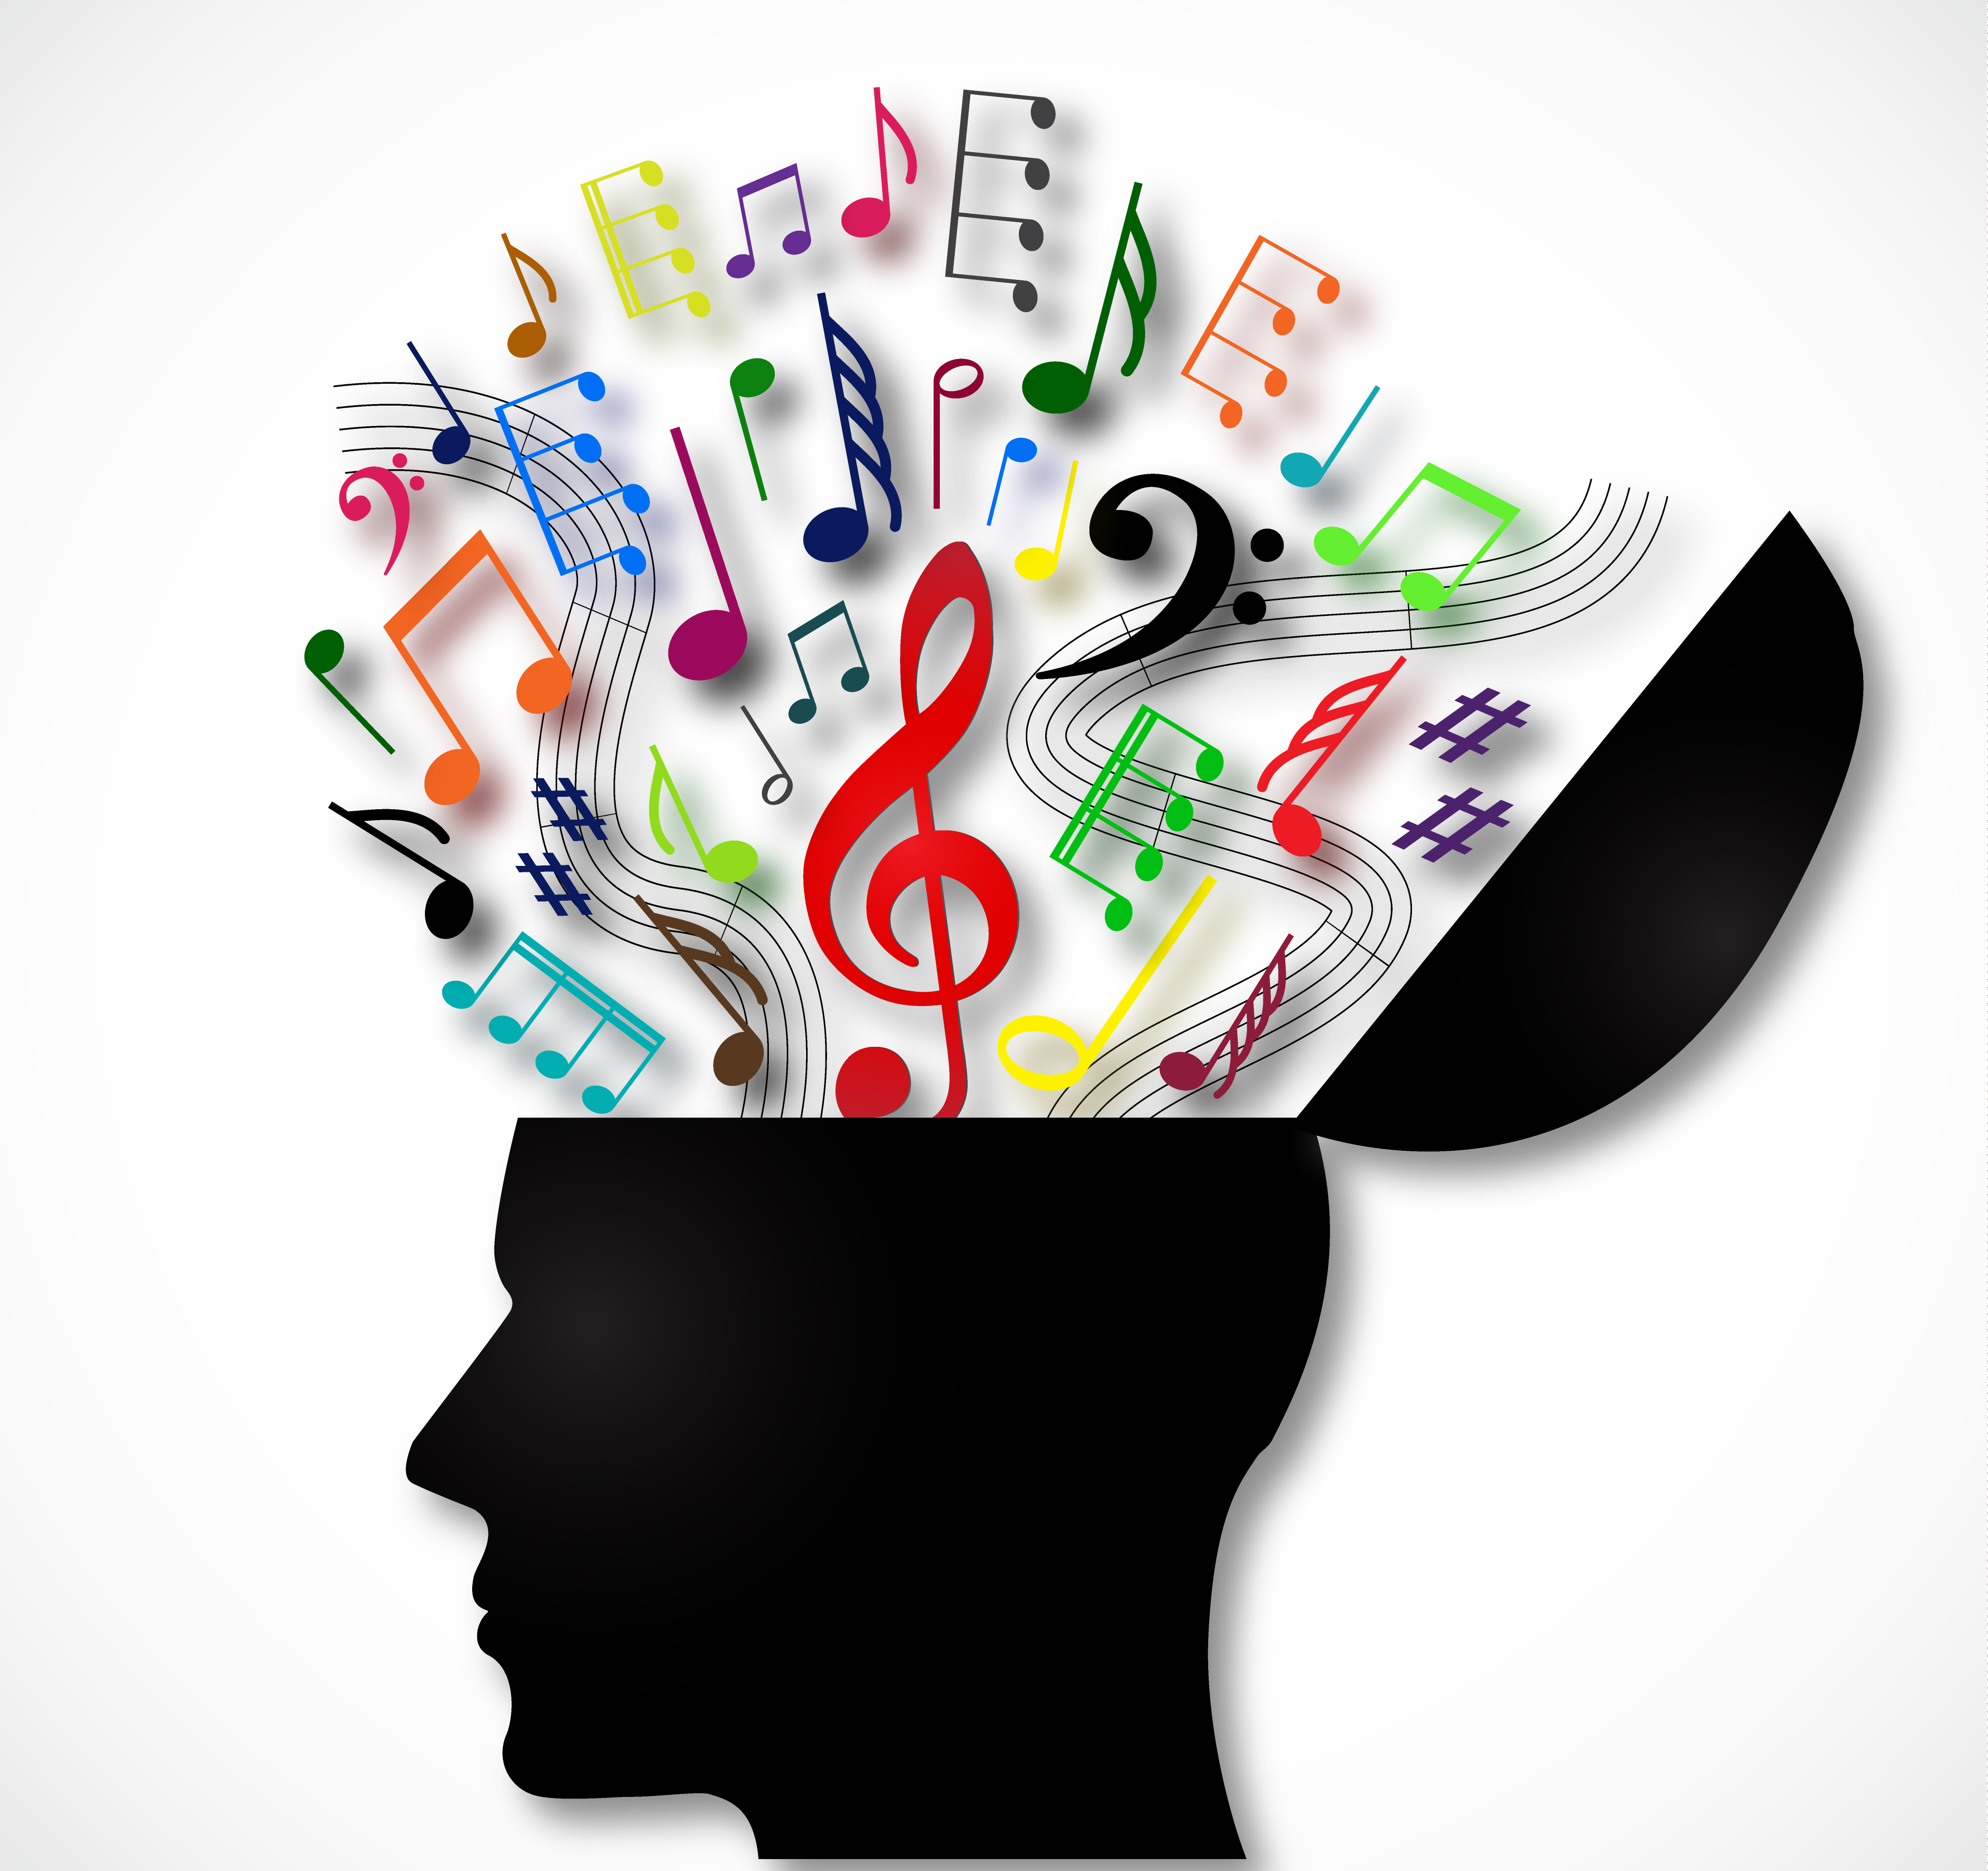 Memories clipart brain science. Making for a positive